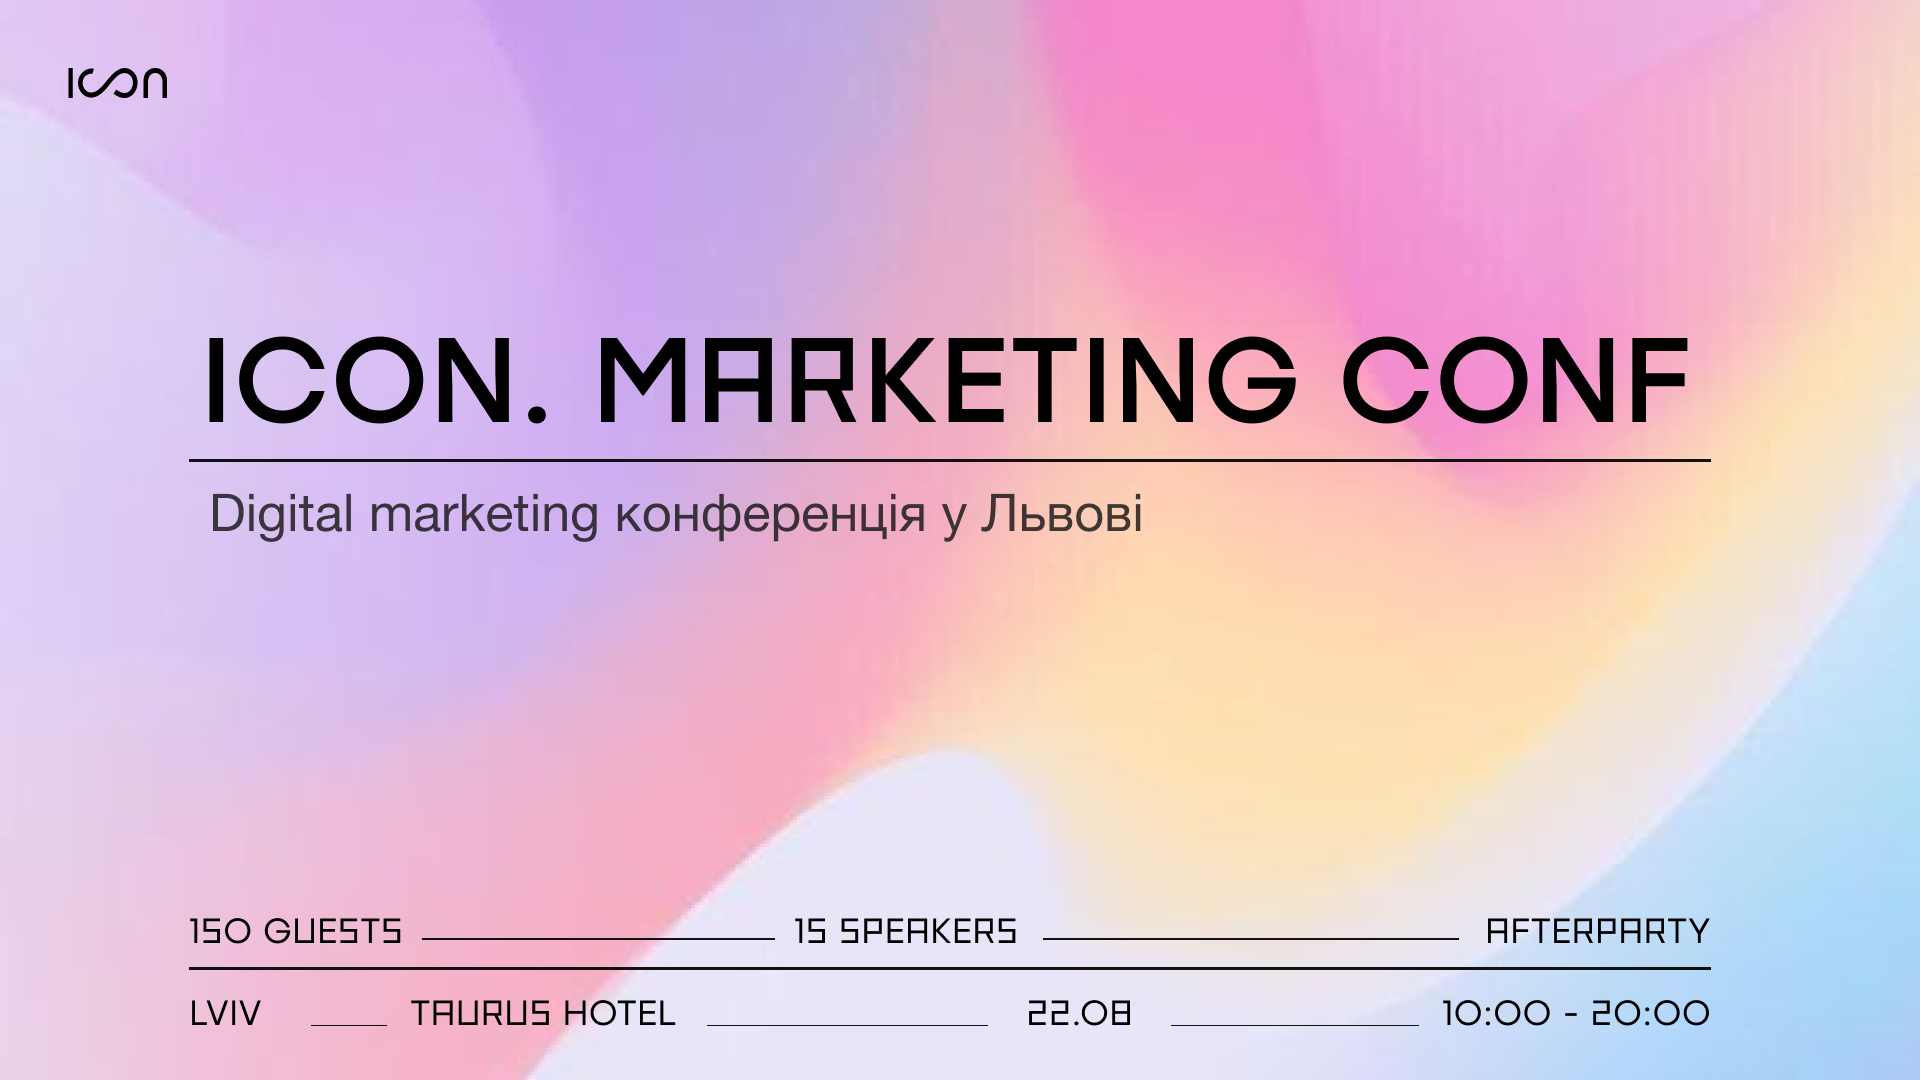 ICON.Marketing conference